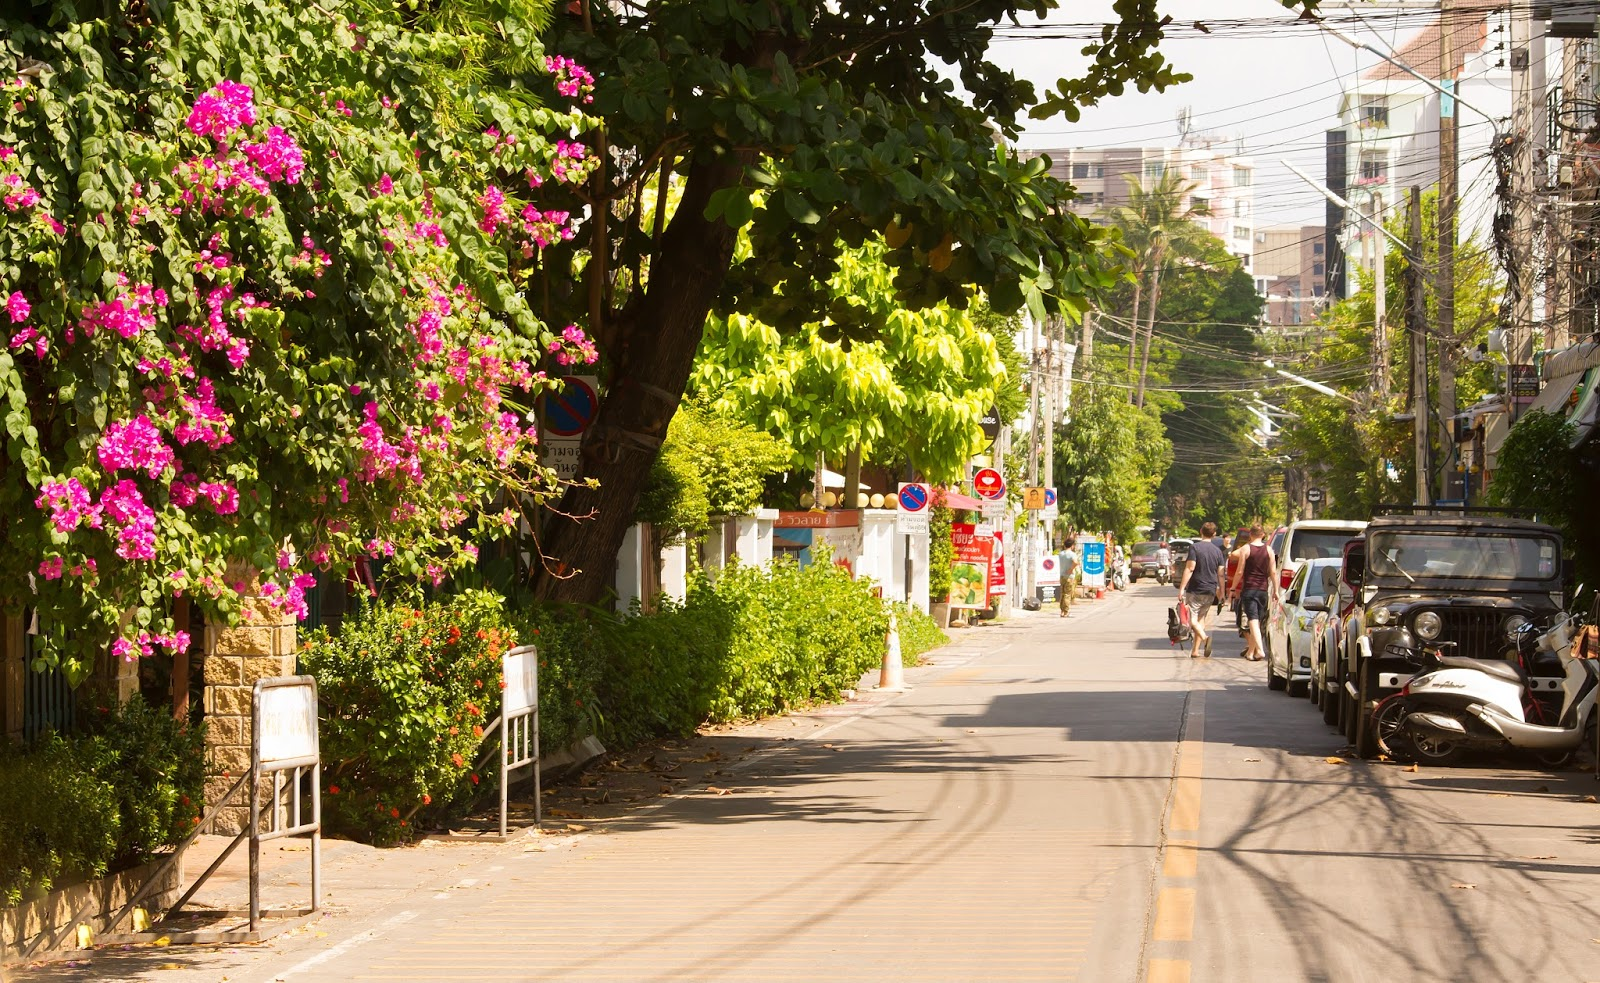 Sides streets of the Nimman area in Chiang Mai, Thailand